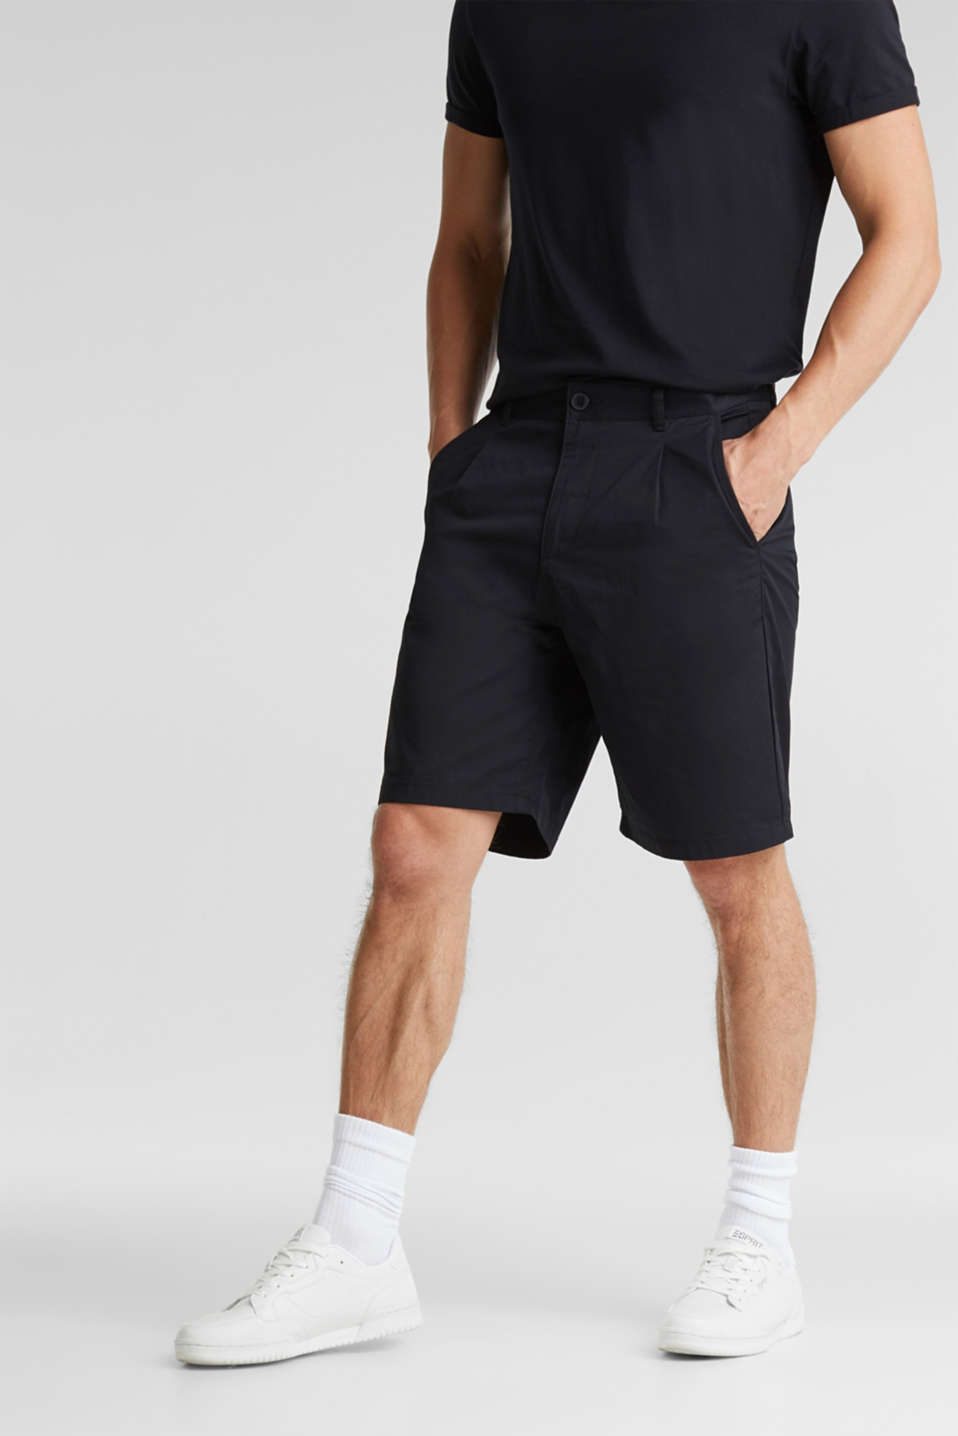 edc - Shorts with organic cotton